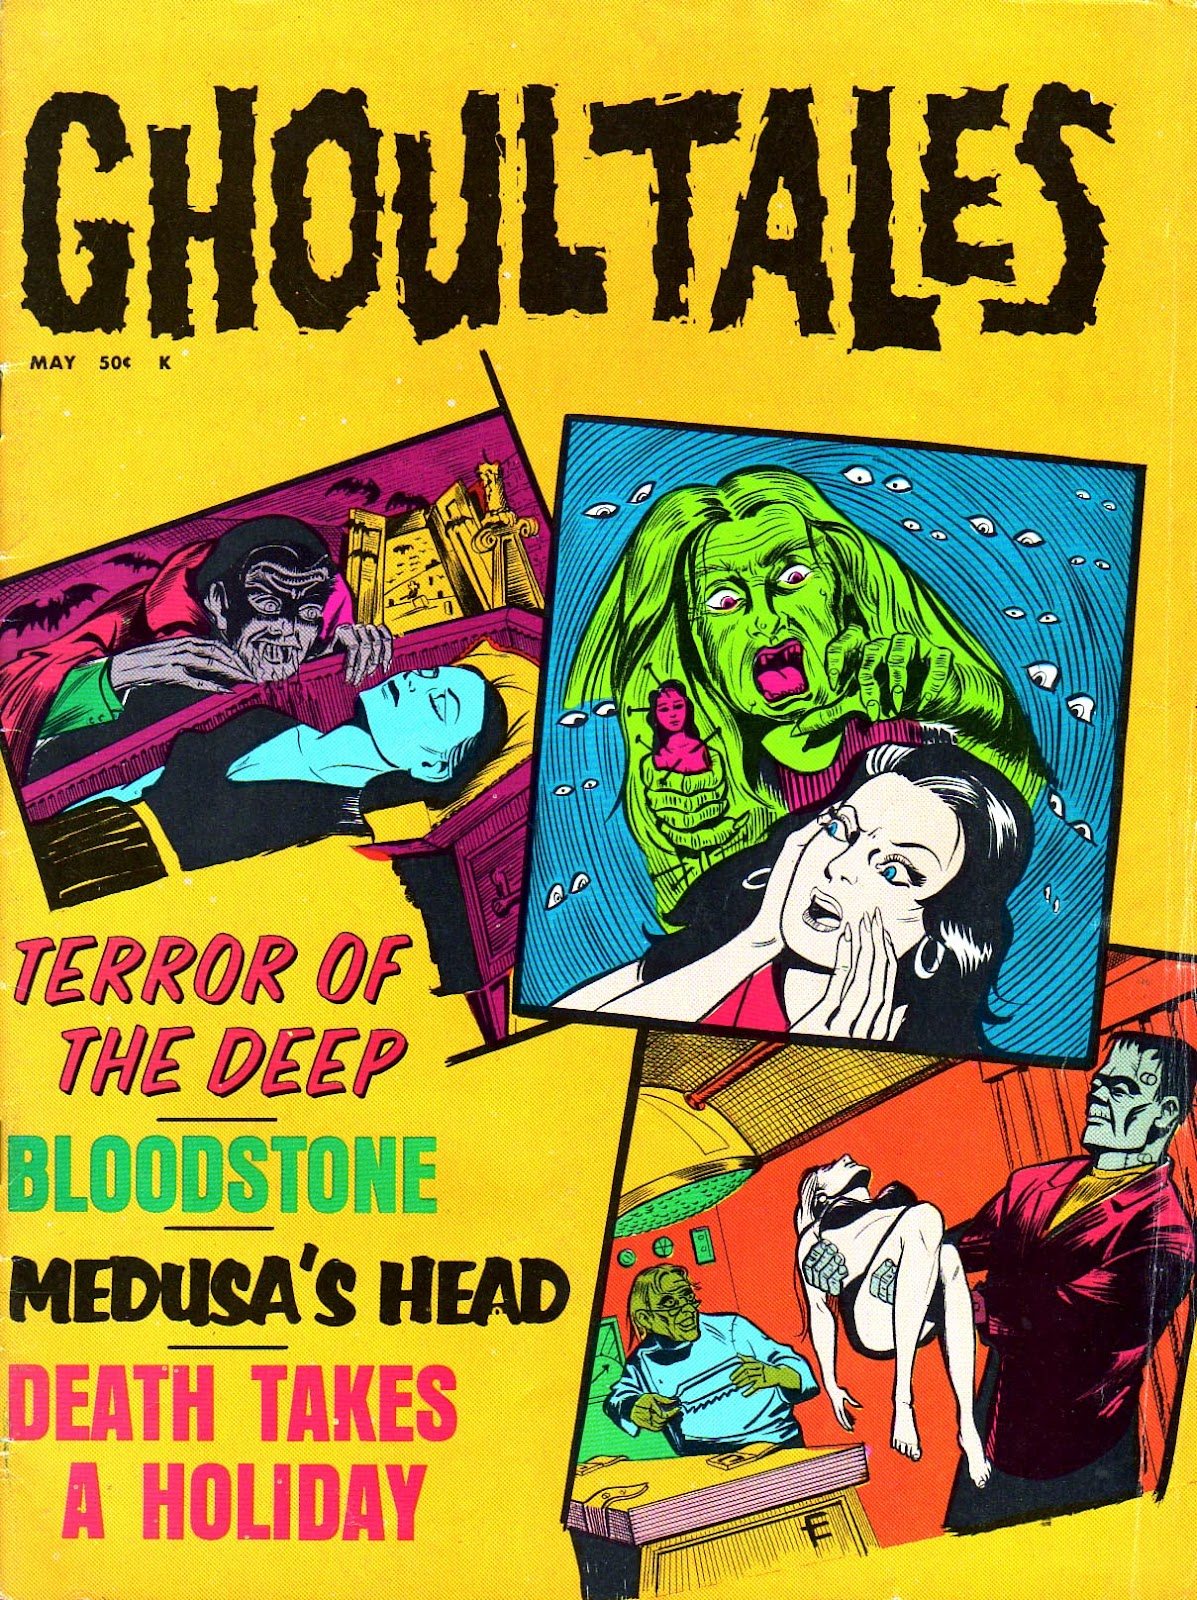 Ghoul Tales - 04, May 1971